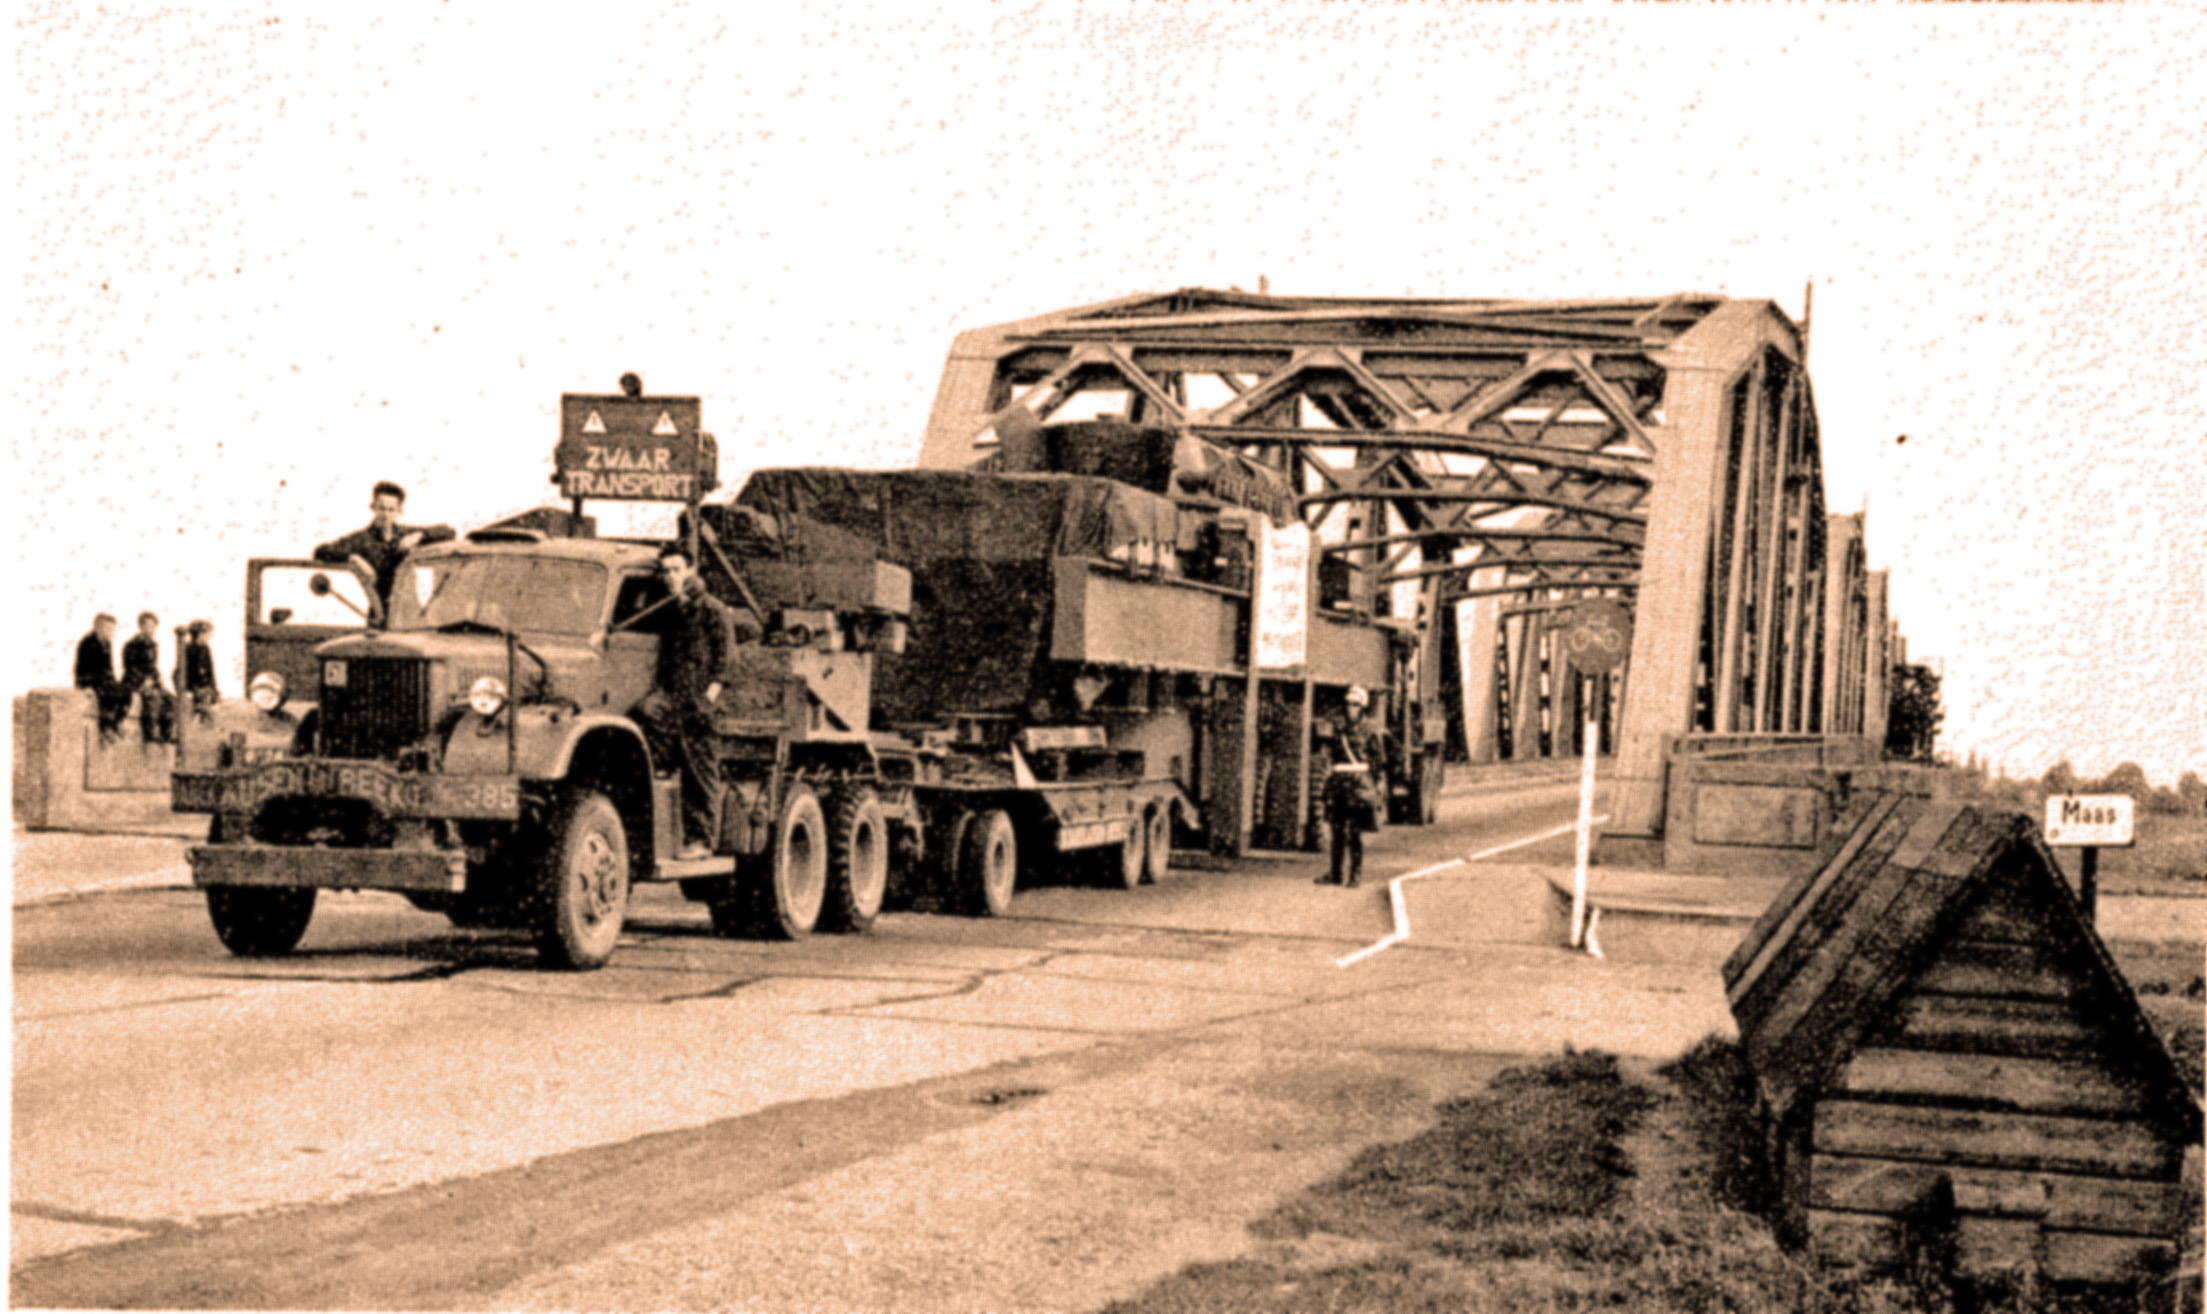 Zwaar transport (1954)